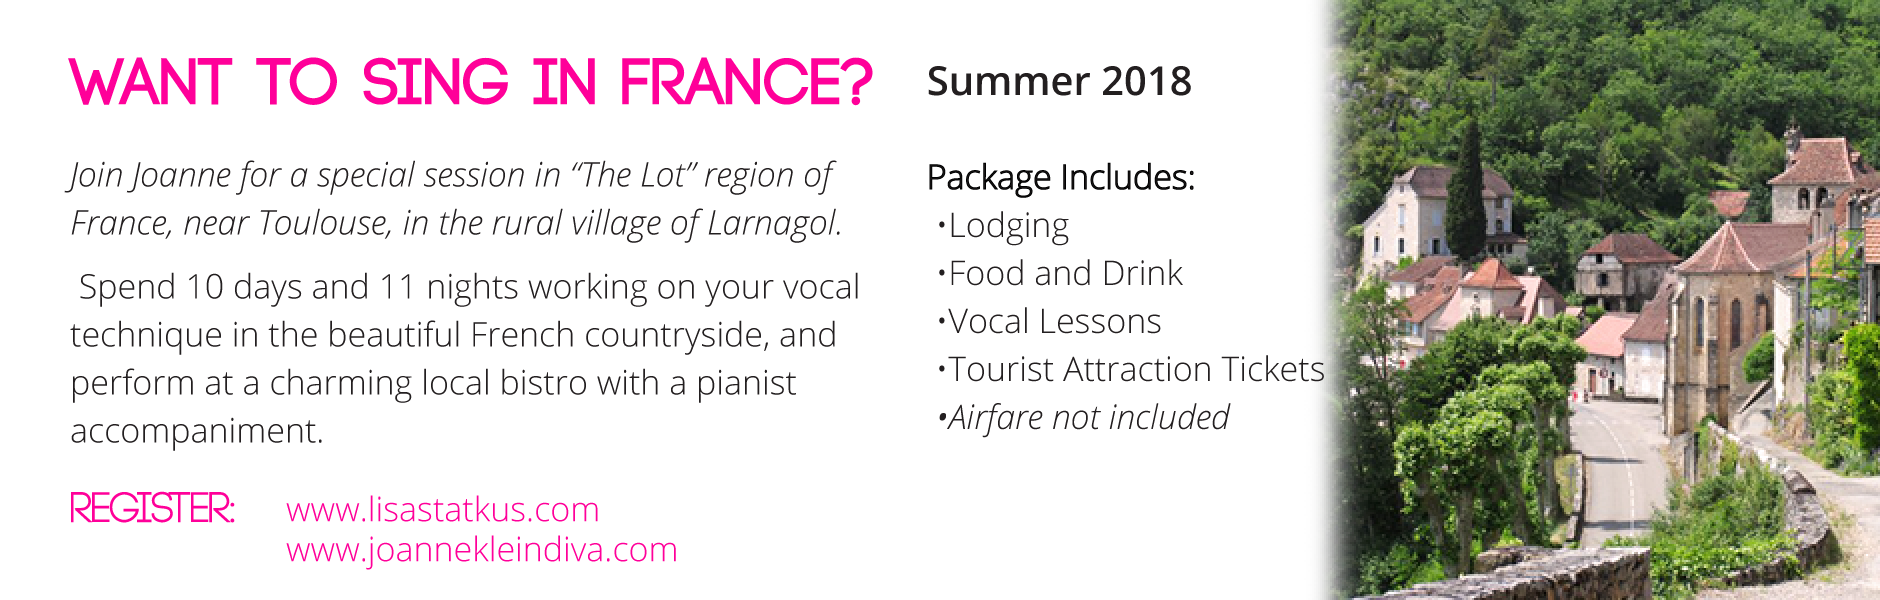 France trip for 2018